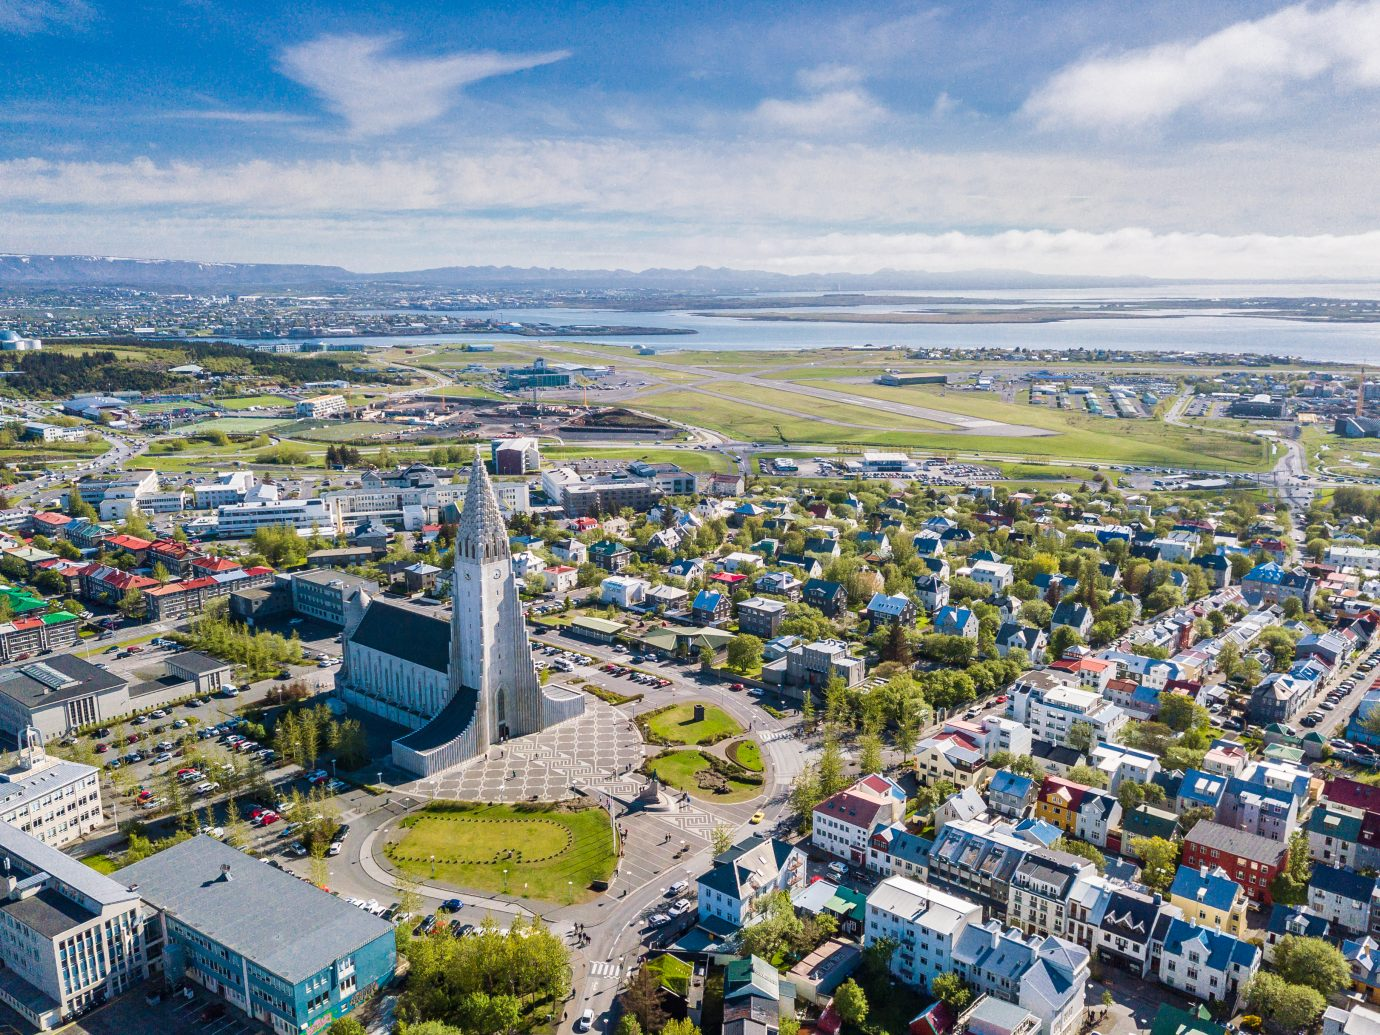 Reykjavik Iceland city scape frop the top with Hallgrimskirkja church.